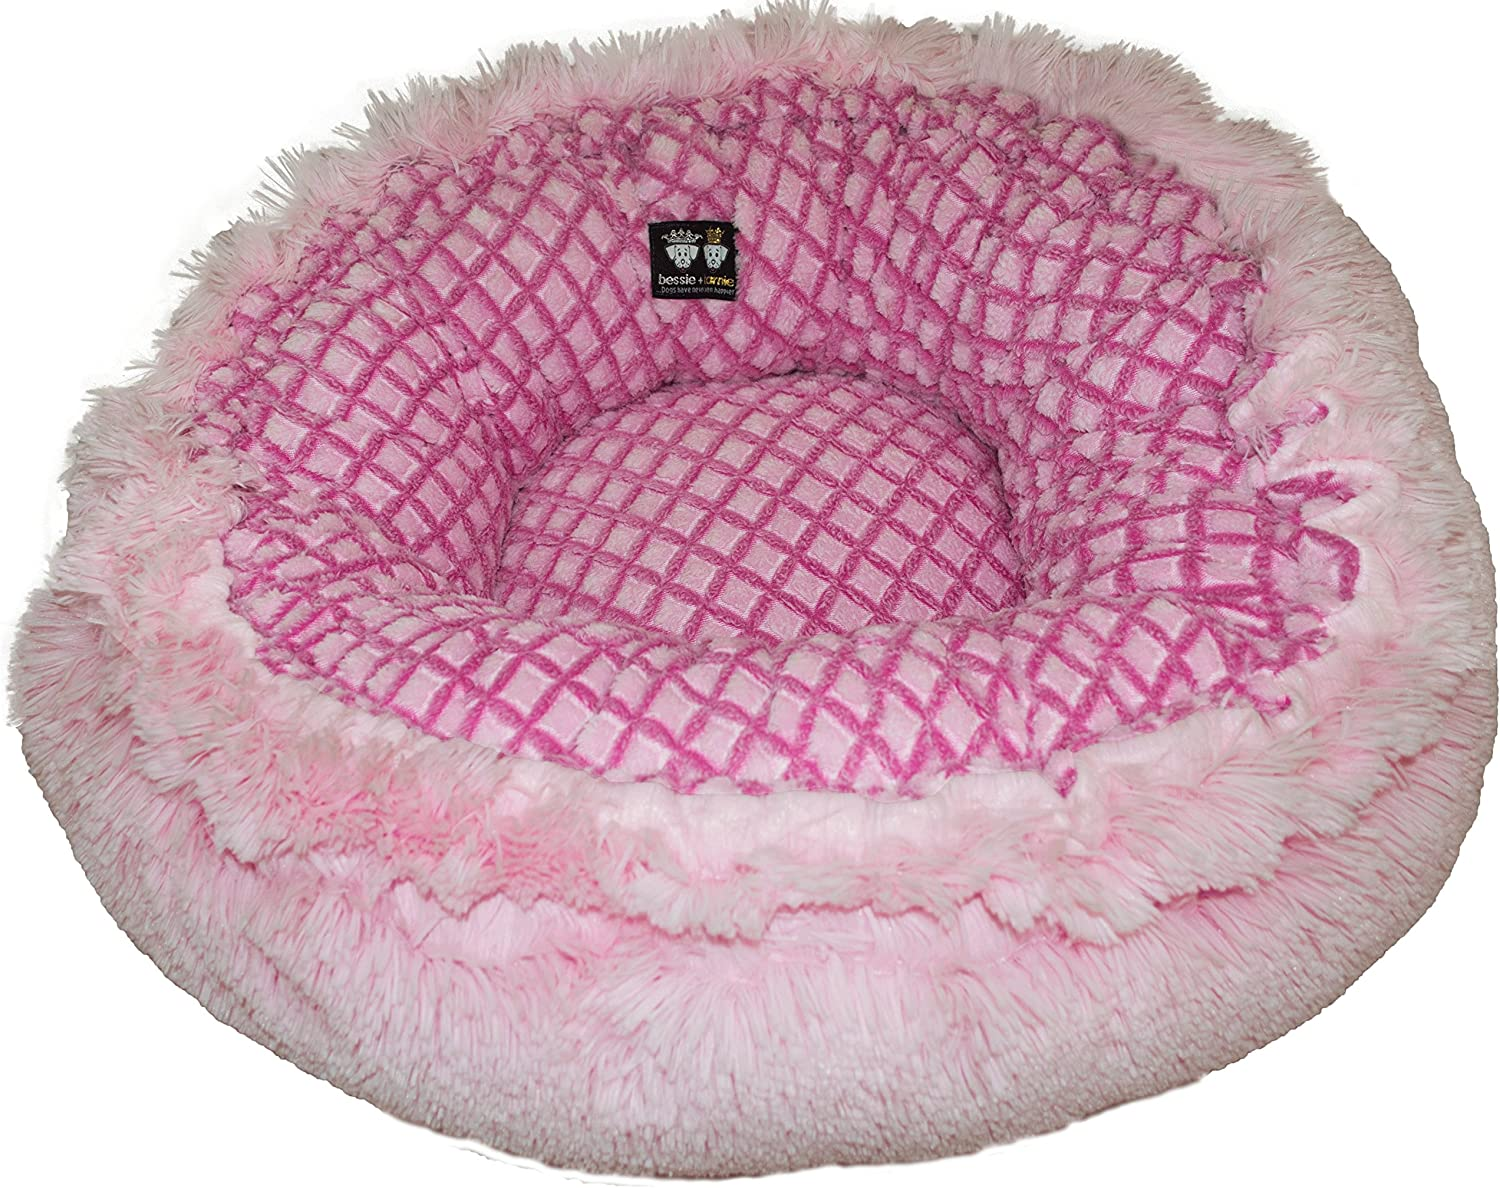 BESSIE AND BARNIE Hybrid Bagelette BedCC PFM Cotton Candy PinkitFence Medium Hybrid Baguette Pet Bed